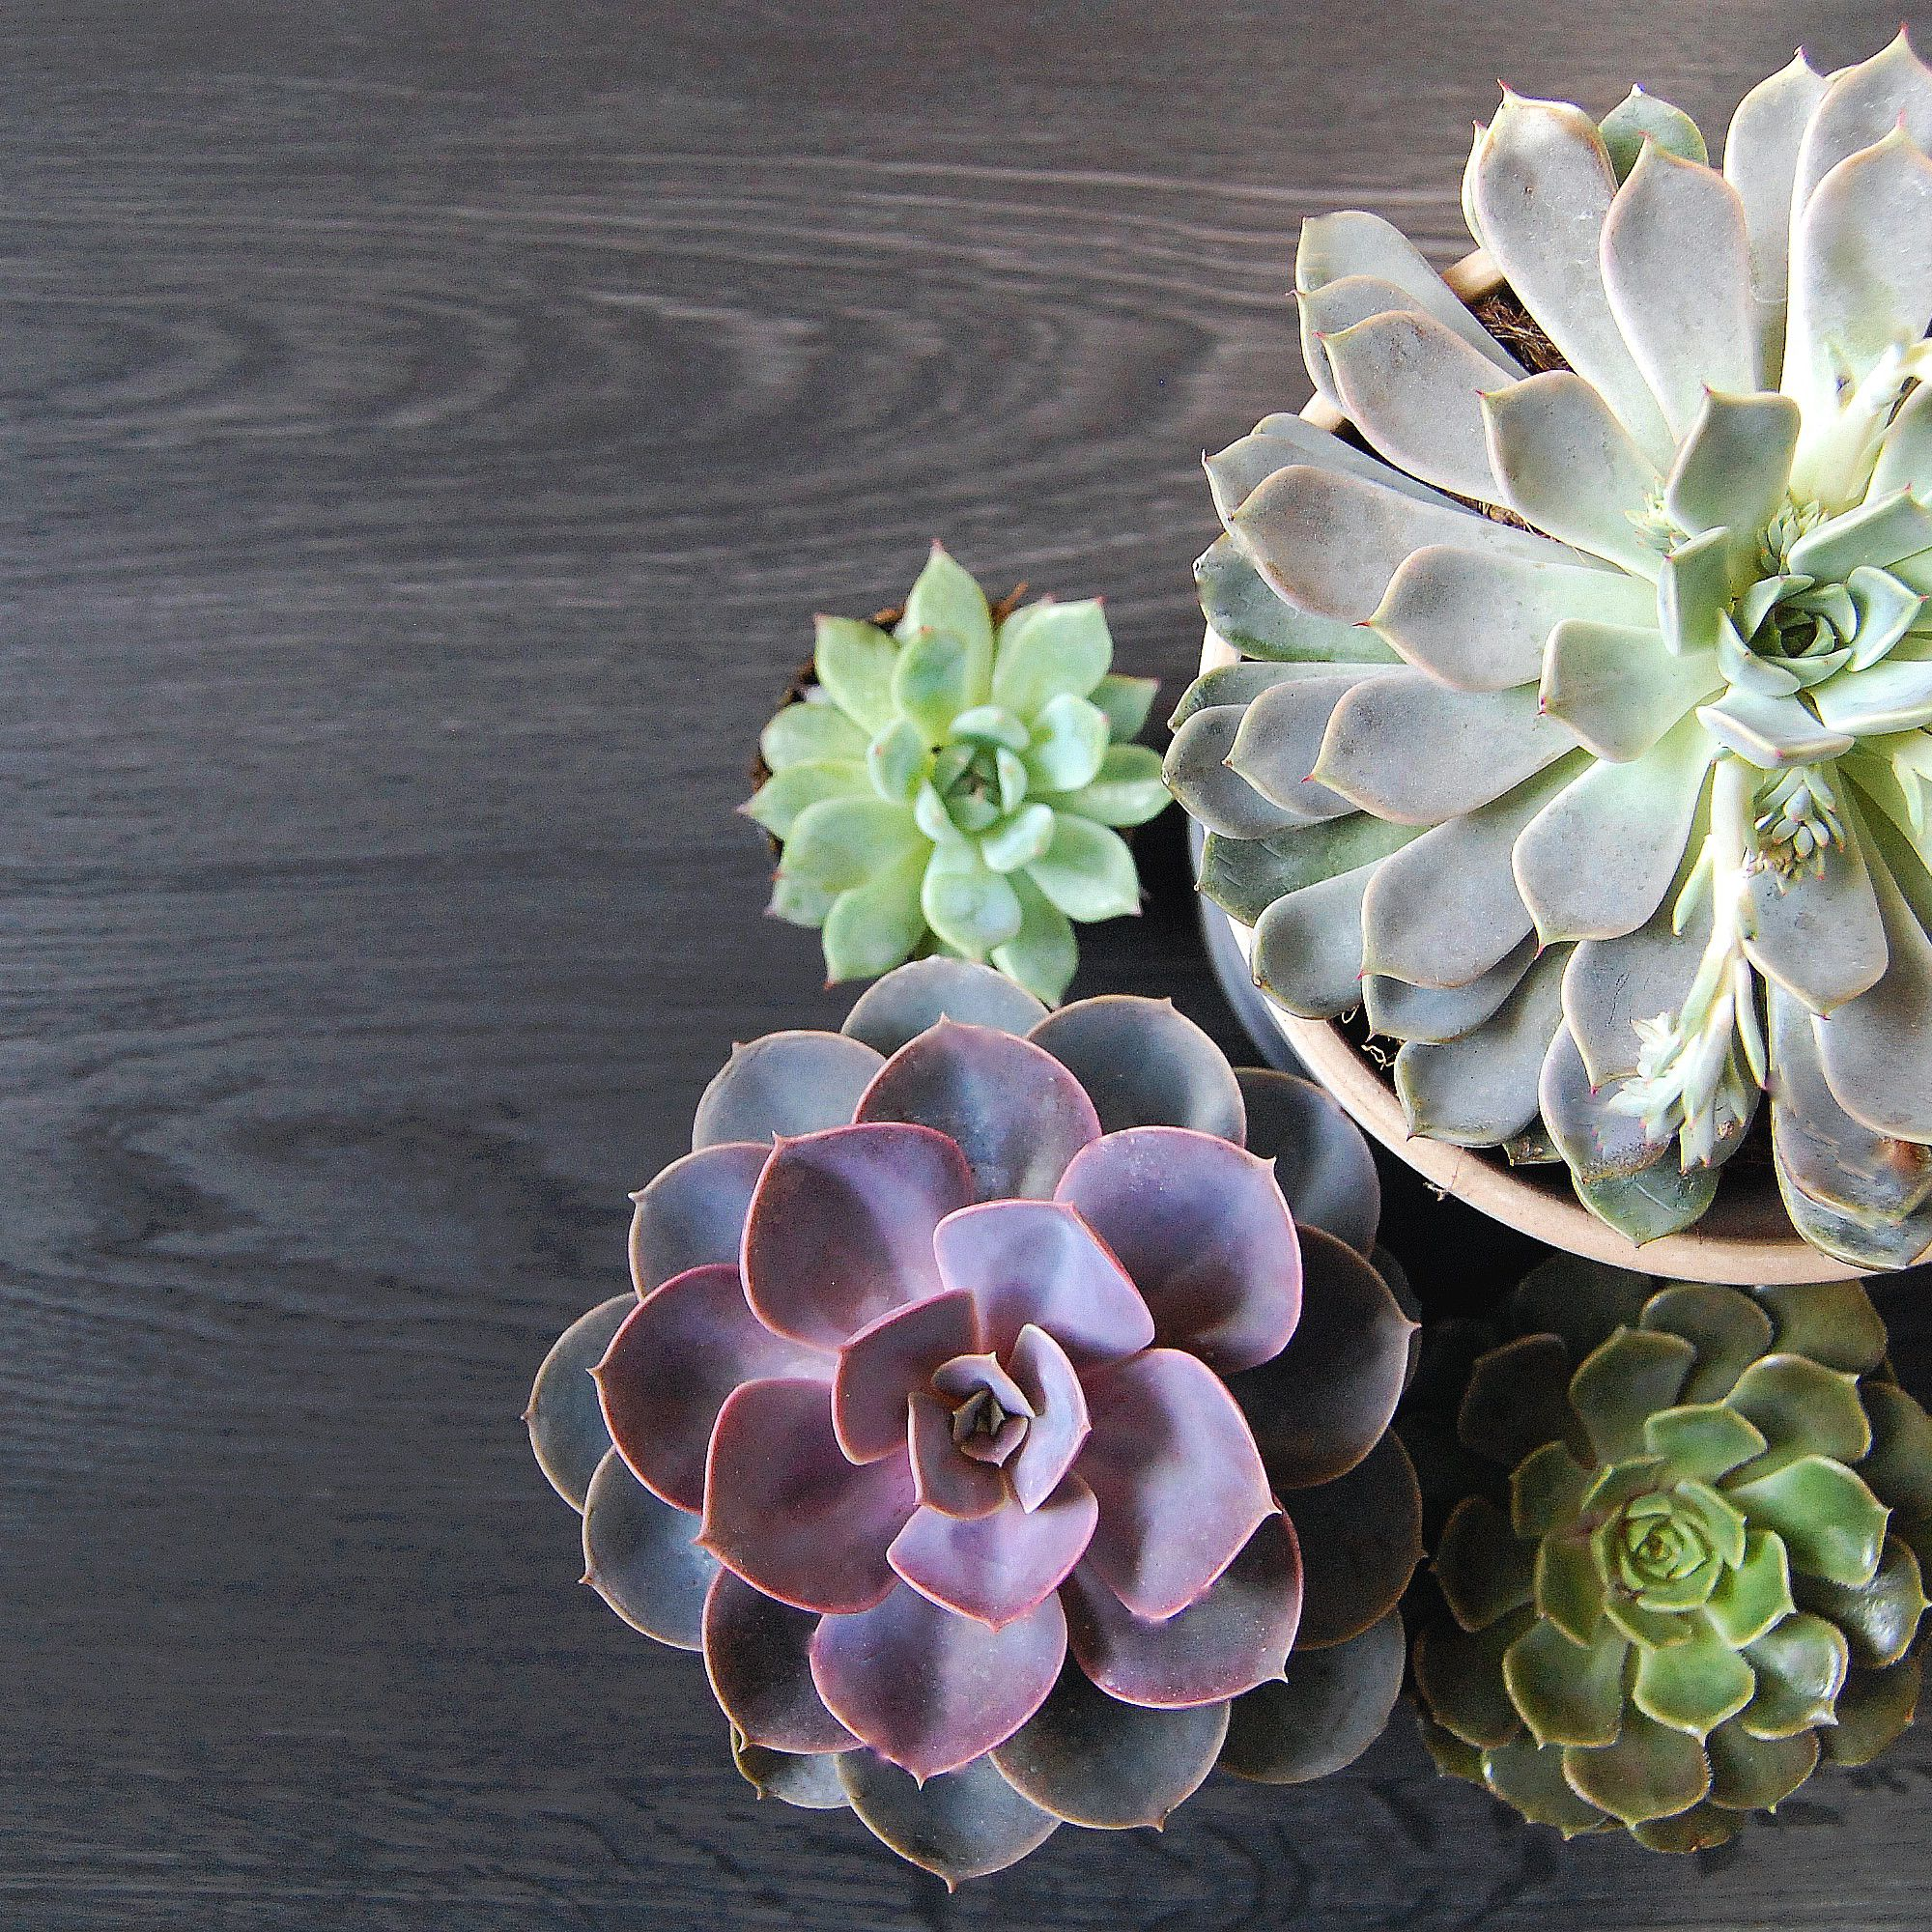 How to Grow Echeveria Succulents